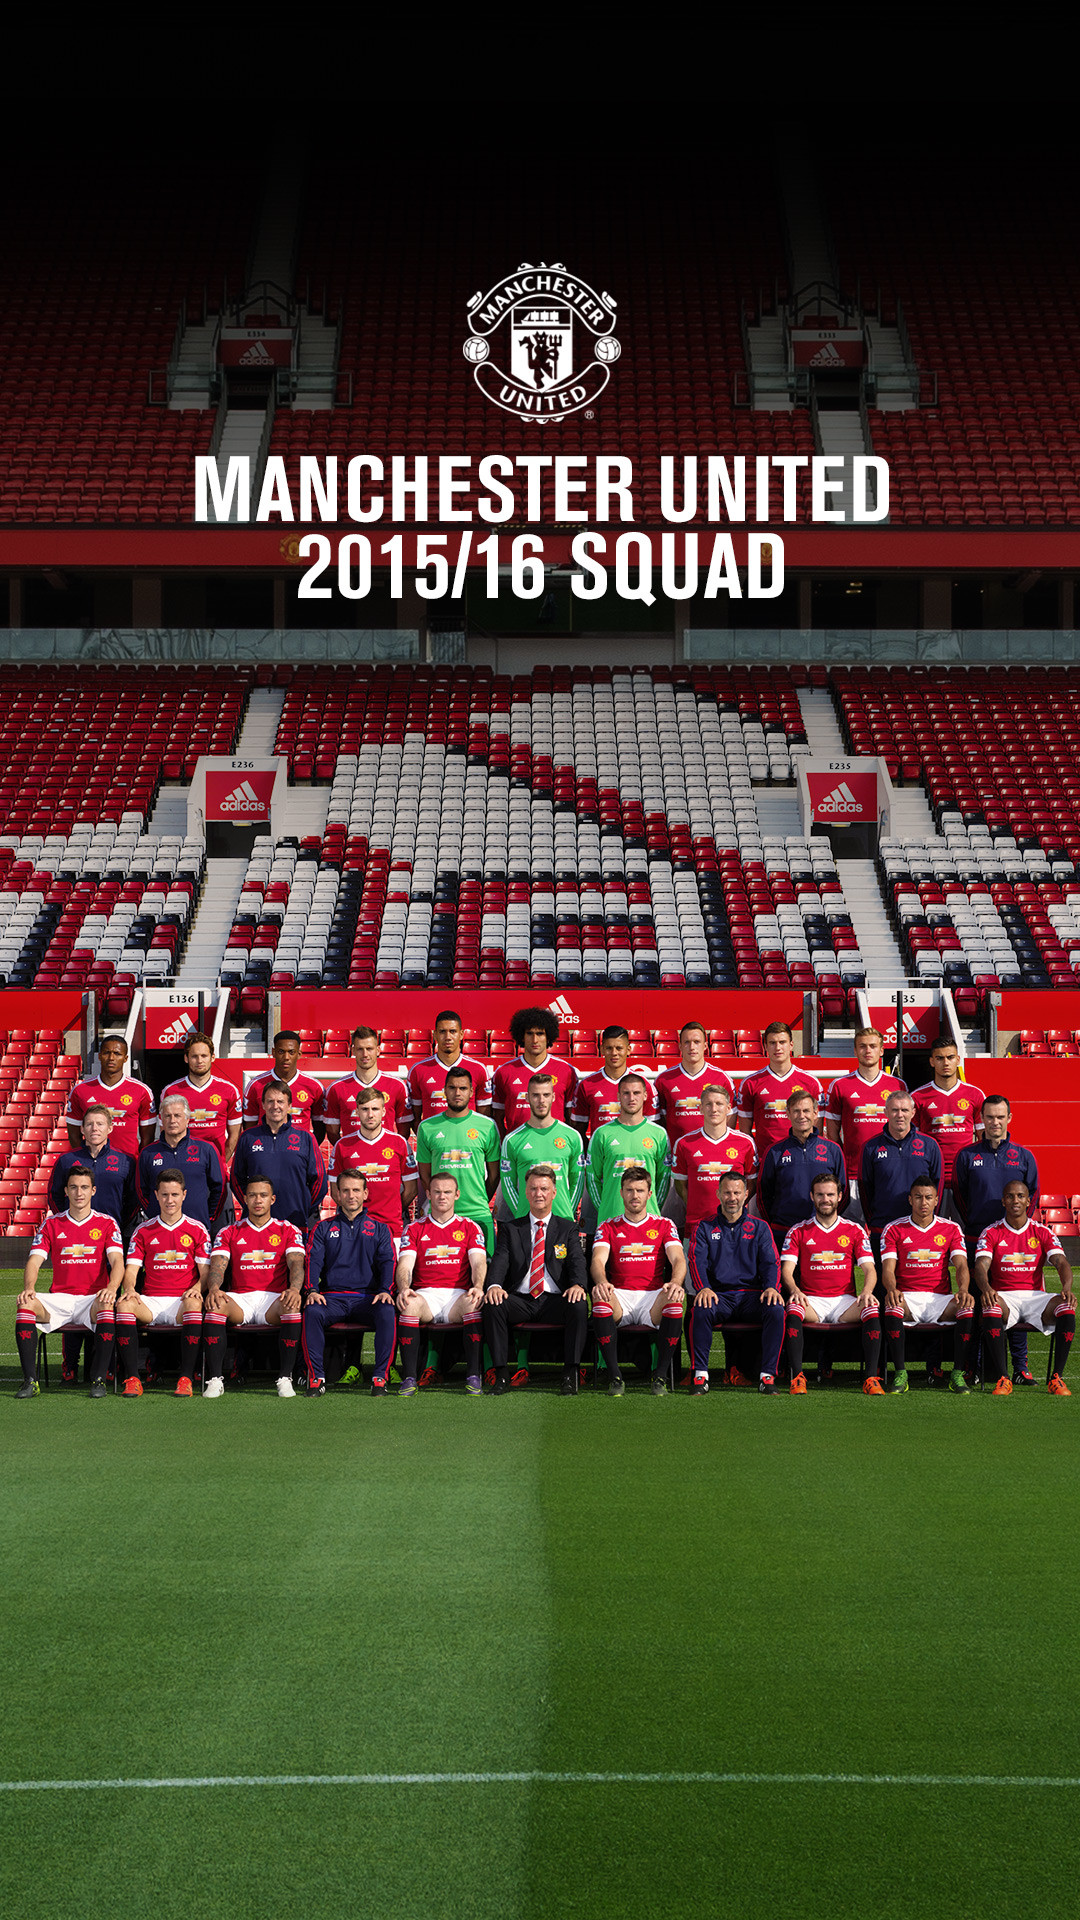 1080x1920 Manchester United Fc Wallpapers iPhone 6 Plus. iPhone 6 · iPhone 6 PLUS